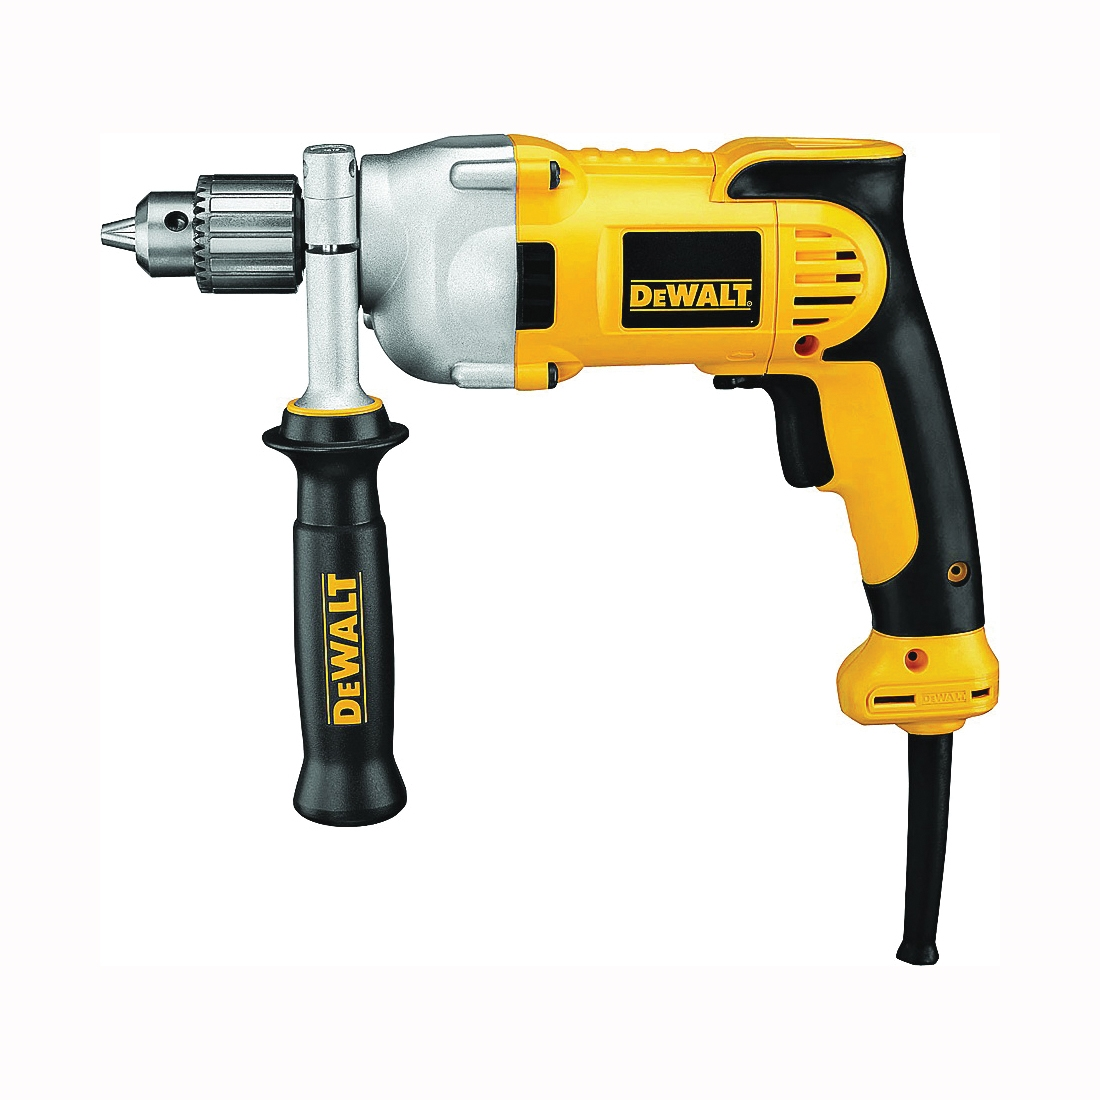 Picture of DeWALT DWD210G Electric Drill, 120 V, 980 W, 1/2 in Chuck, Keyed Chuck, 0 to 1250 rpm No Load